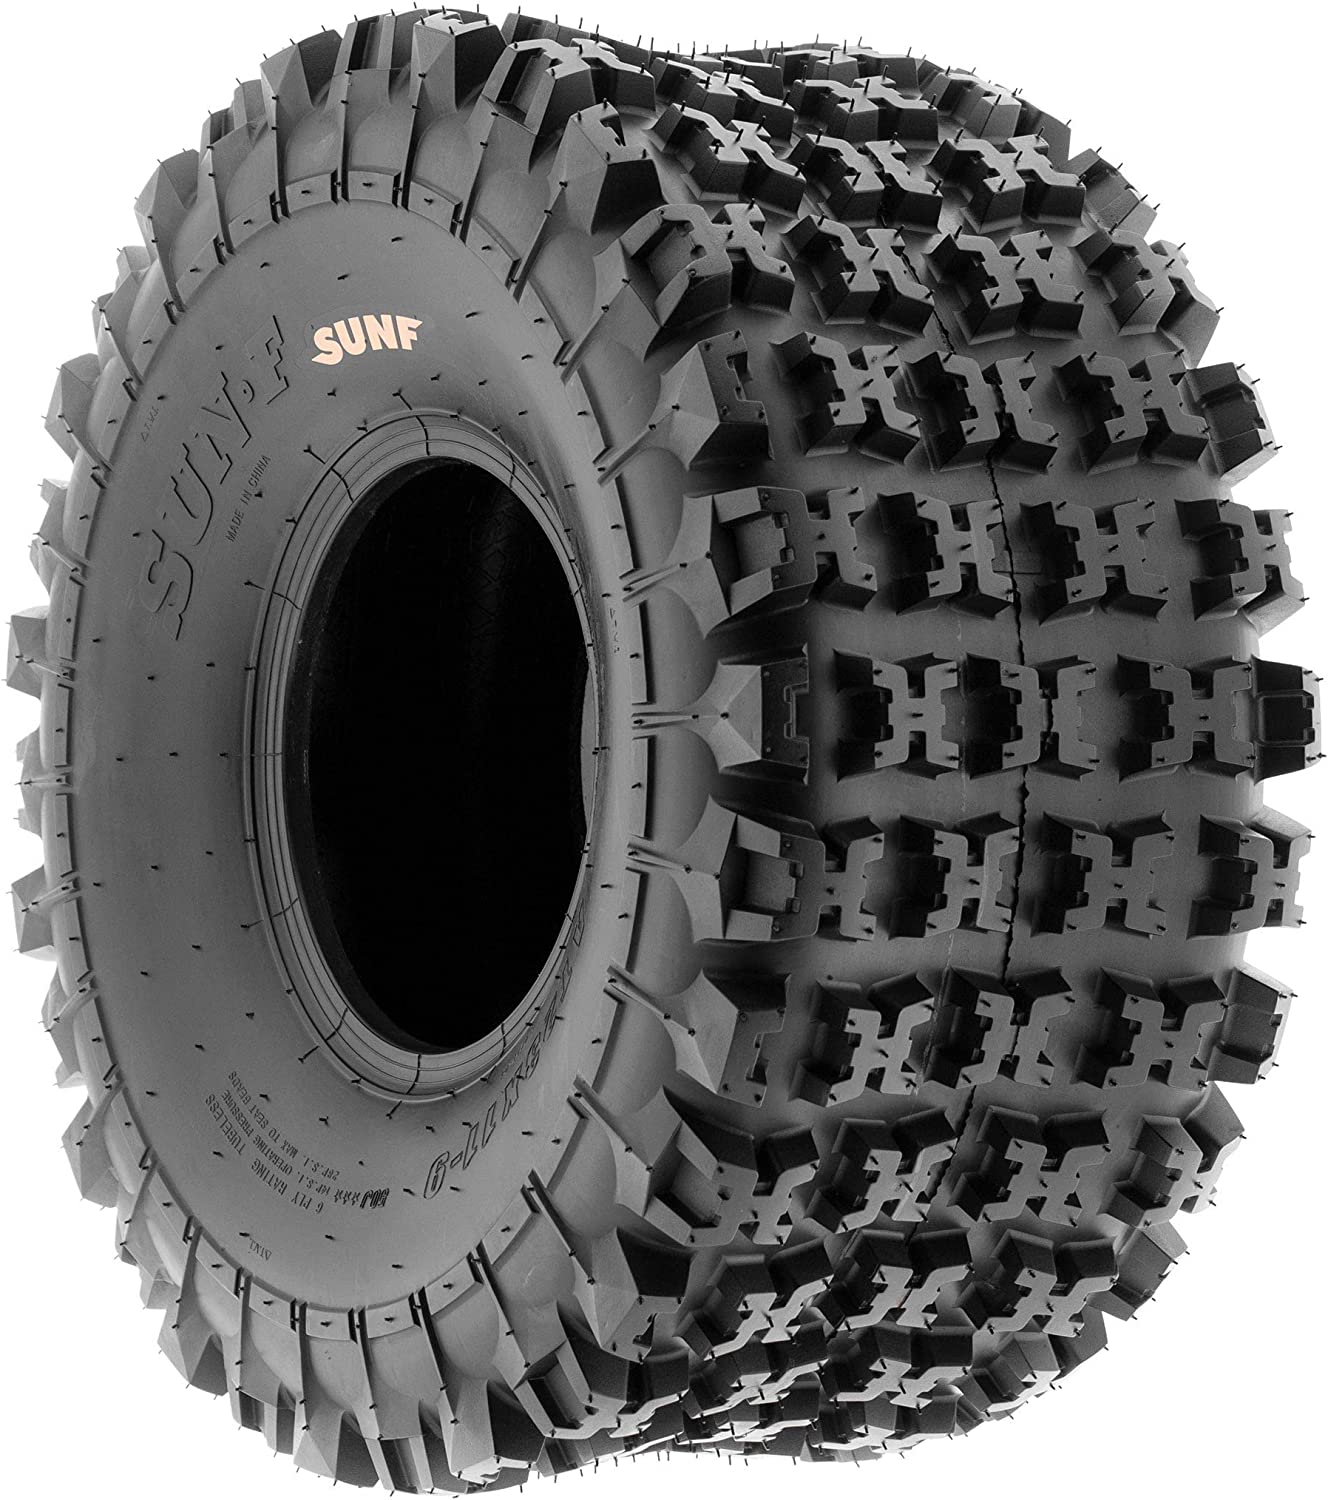 Bundle SunF 19x7-8 20x11-8 ATV UTV Tires 6 PR Tubeless A027